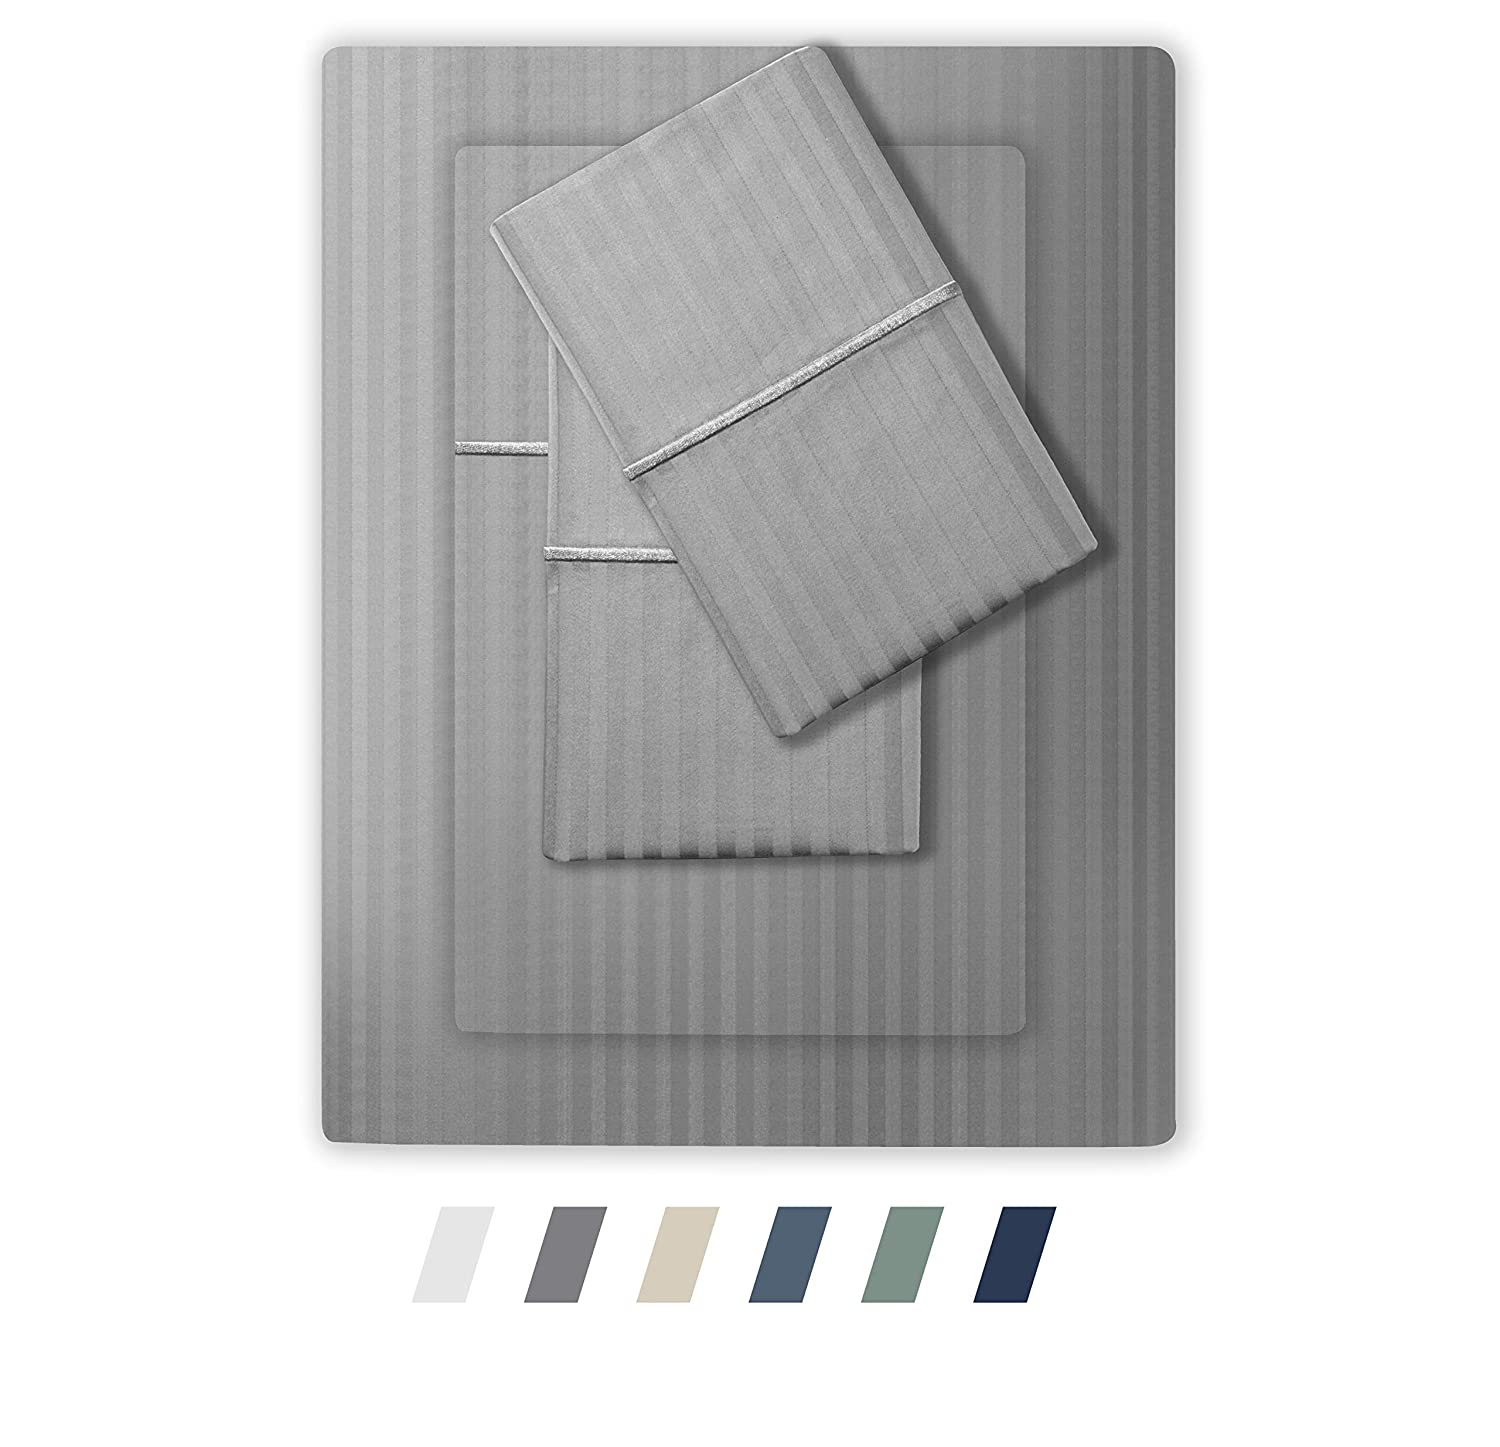 Feather & Stitch 500 Thread Count 100% Cotton Stripe Sheets + 2 Pillowcases, Soft Sateen Weave, Deep Pocket, Hotel Collection, Luxury Bedding Set (Grey, California King)